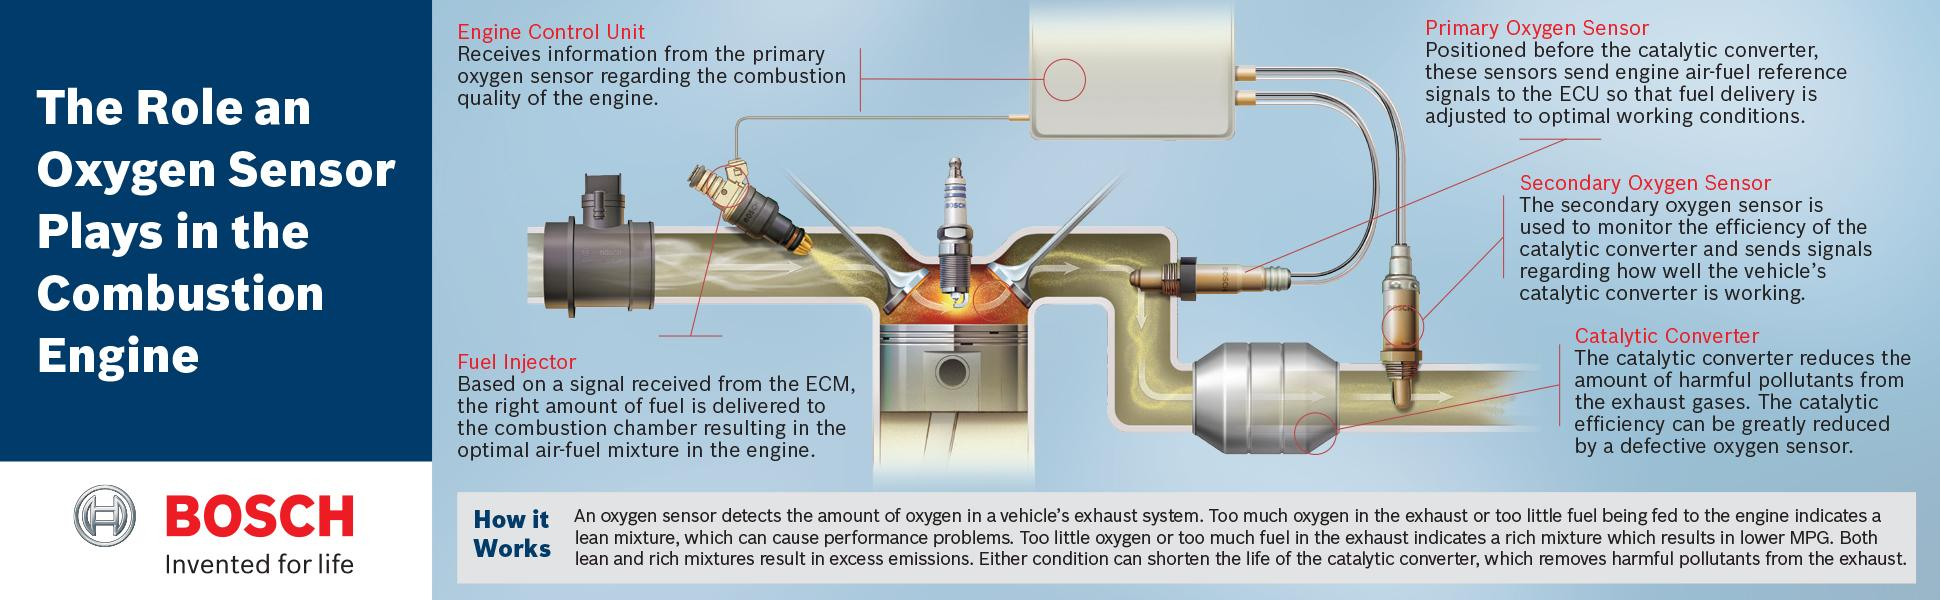 Sensor Wiring Diagram Lexus on 02 sensor voltage, 02 sensor crx, 02 sensor 95 maxima located, 06 mustang 02 sensors diagram, 02 sensor connector, 02 sensor circuit, oxygen sensor diagram,